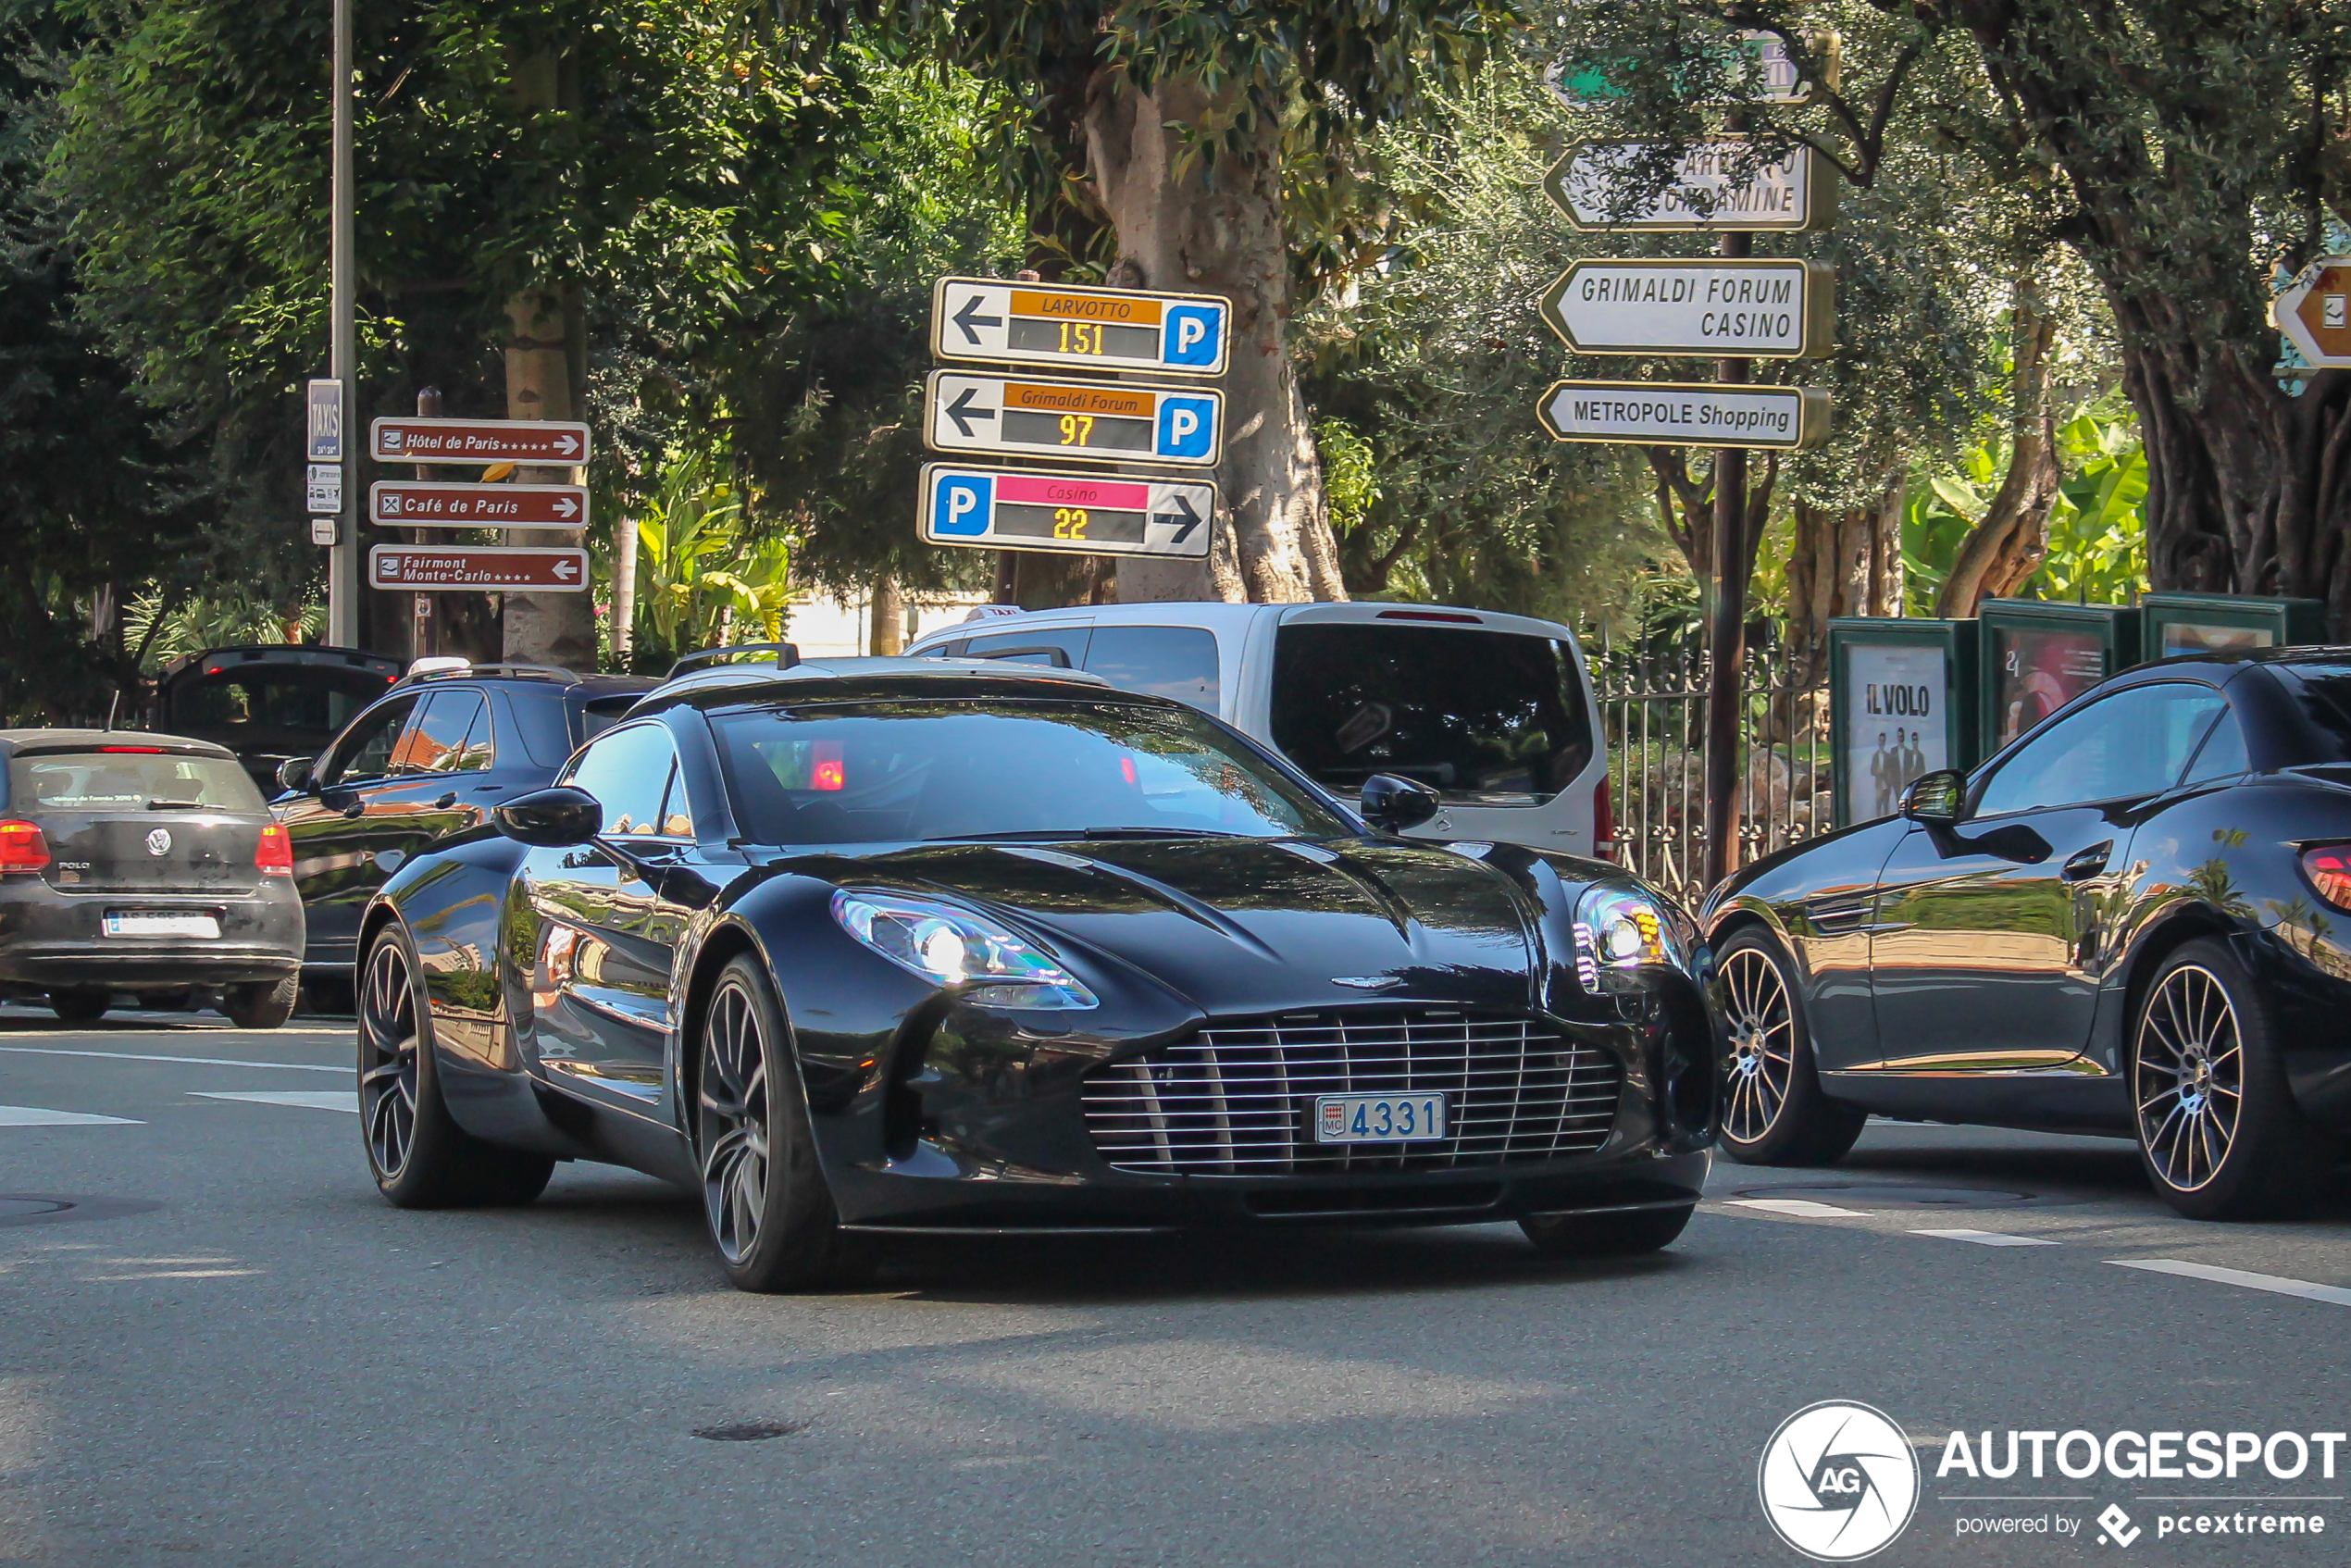 Aston Martin One 77 11 August 2020 Autogespot